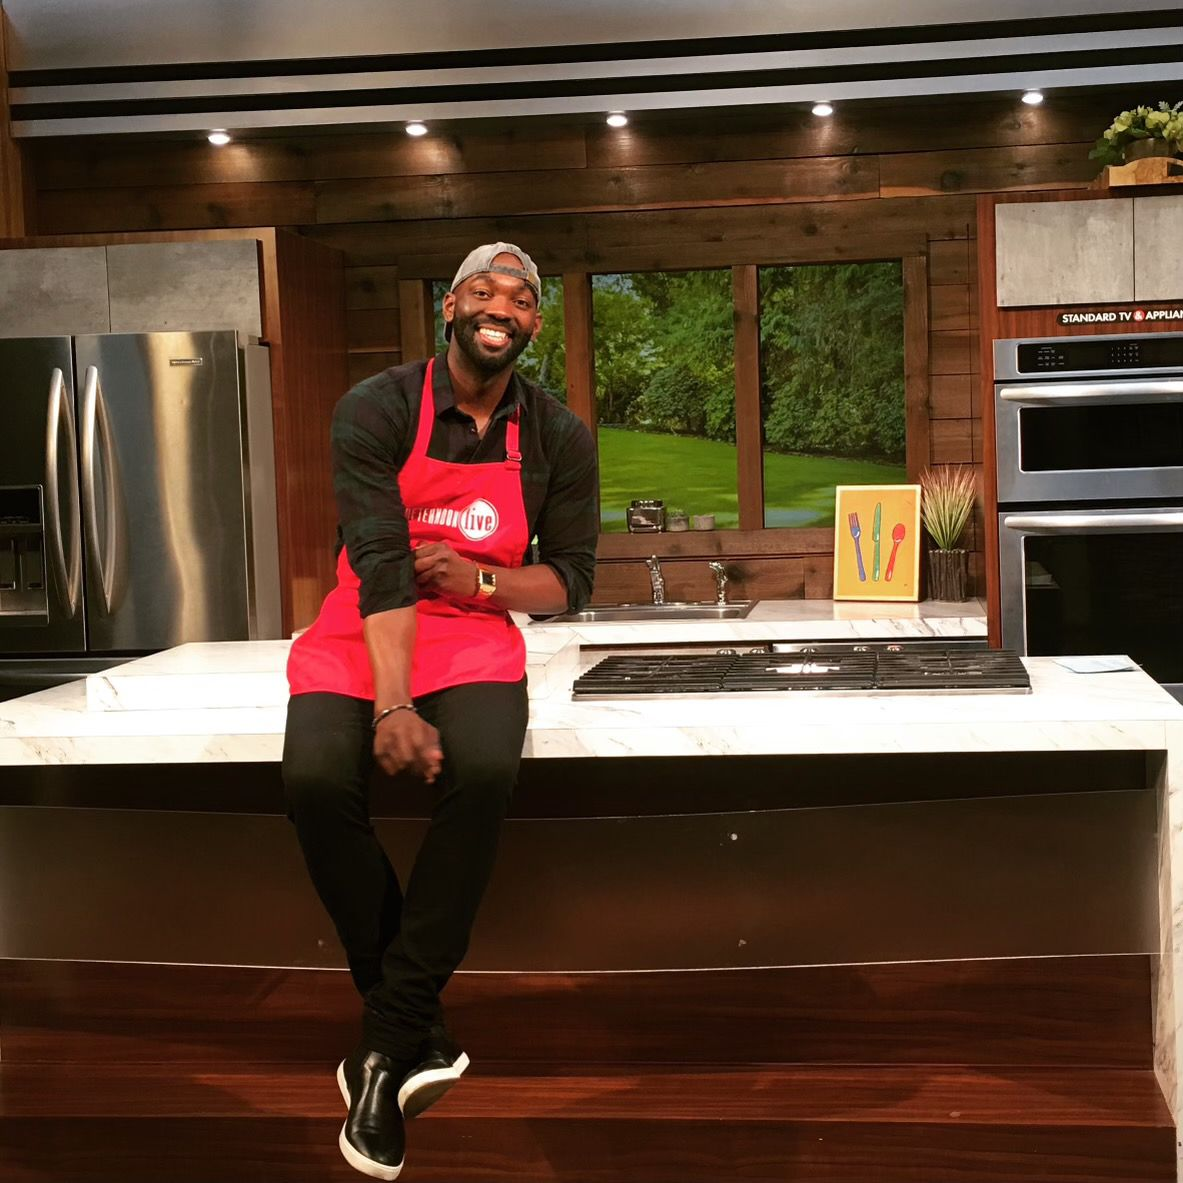 Plant Based Papi owner Jewan Manuel, a man in a backwards baseball cap and an apron, sitting on the counter in a kitchen